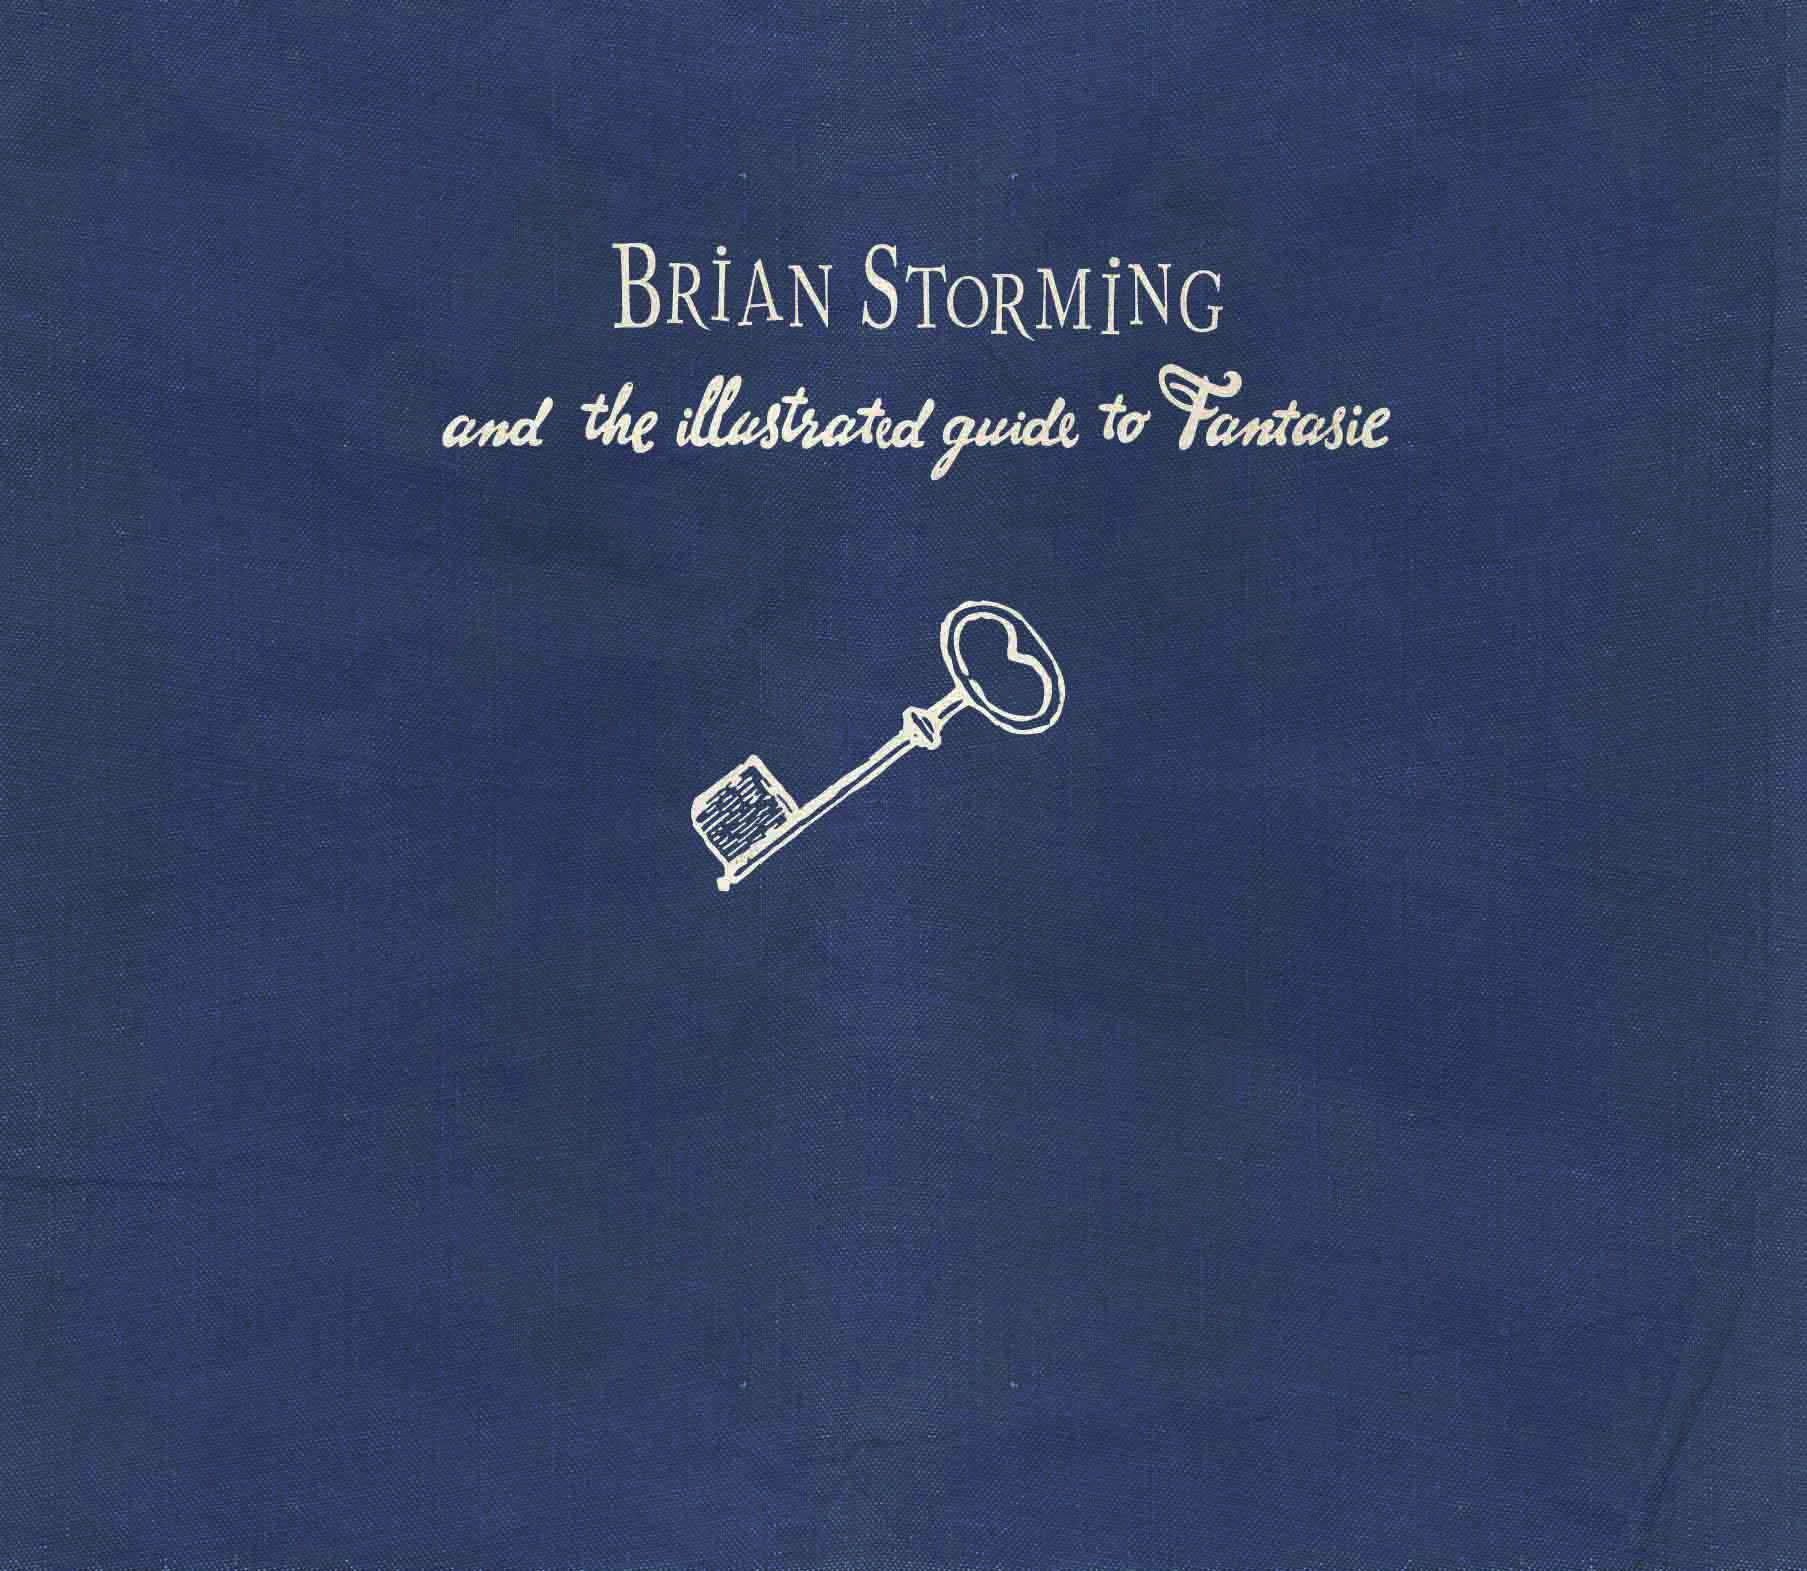 Brian Storming and the illustrated guide to Fantasie